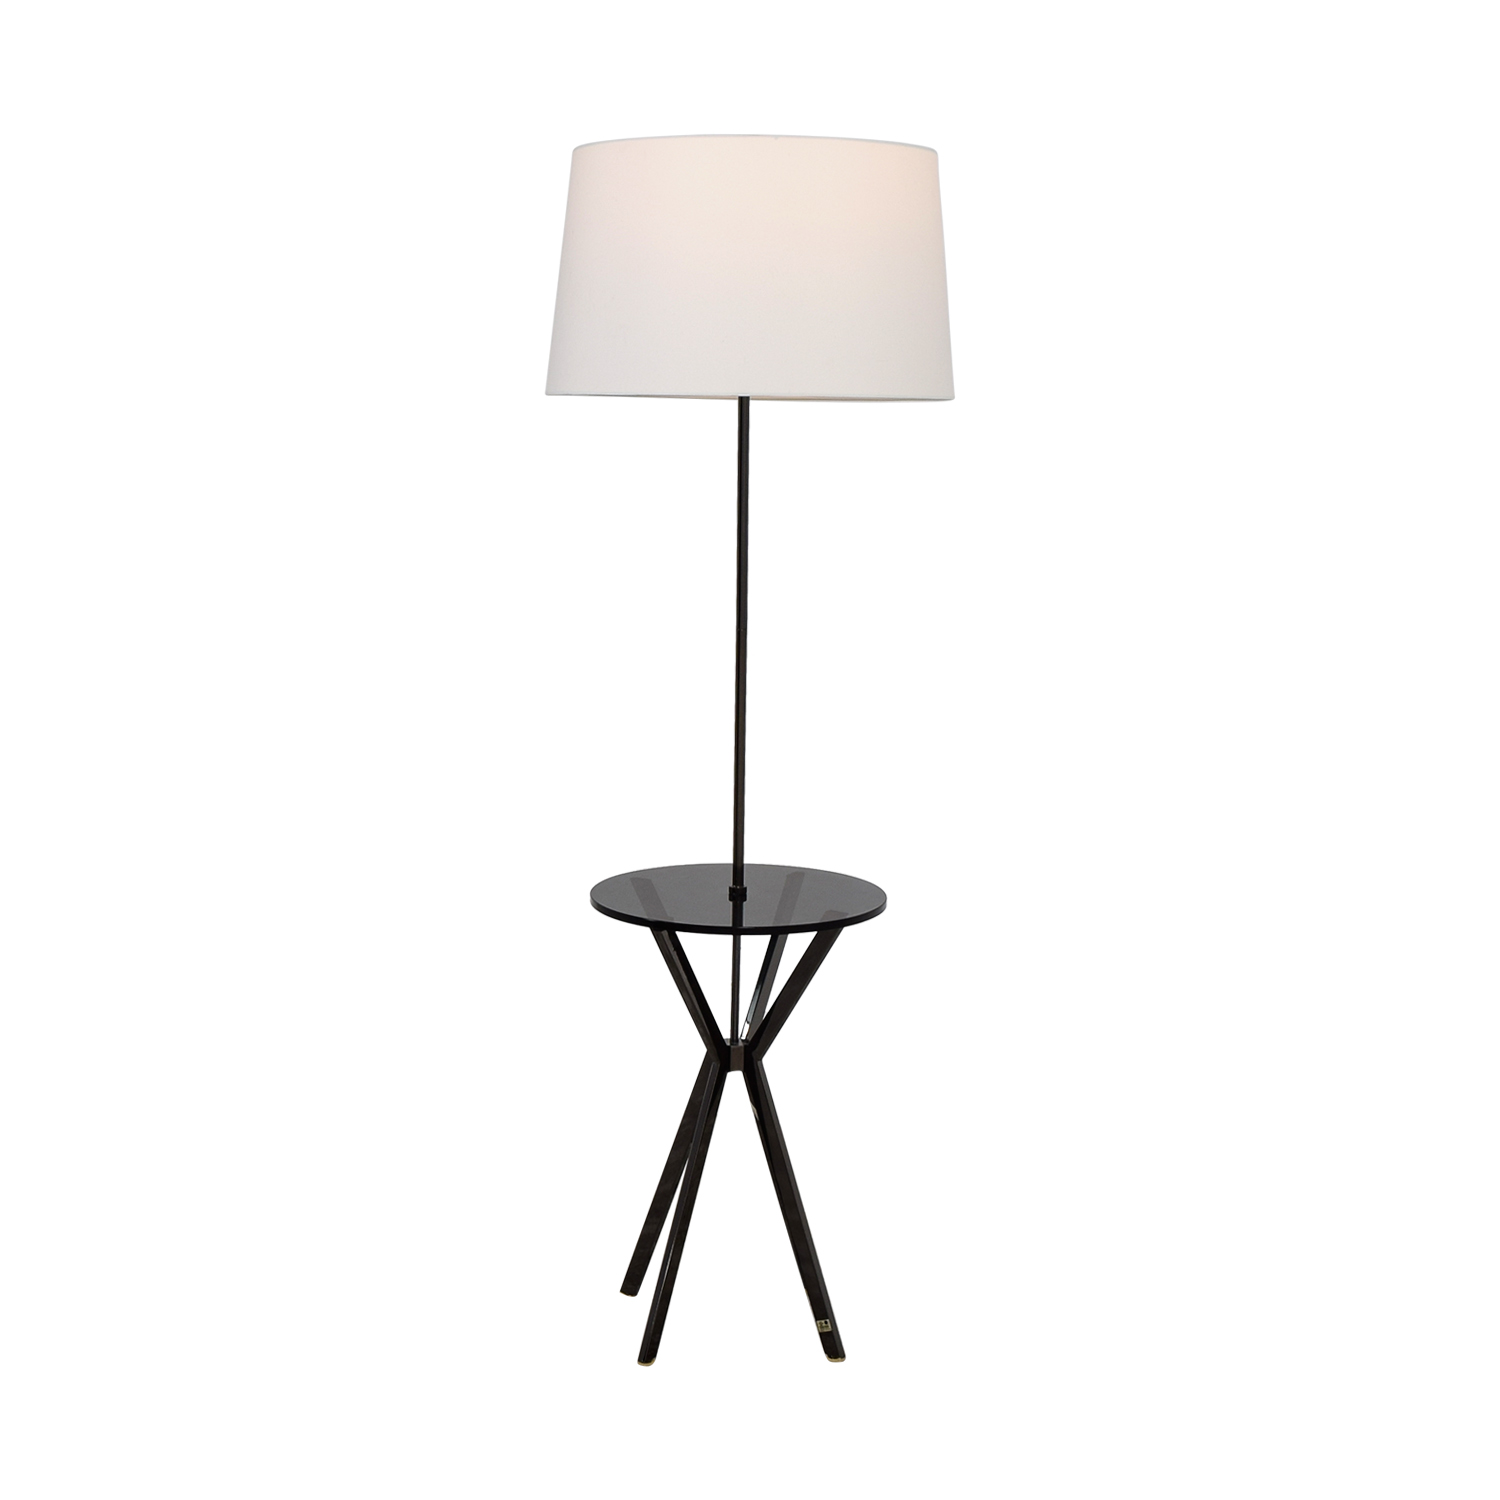 68 off west elm west elm floor lamp with table attached decor west elm floor lamp with table attached decor aloadofball Image collections